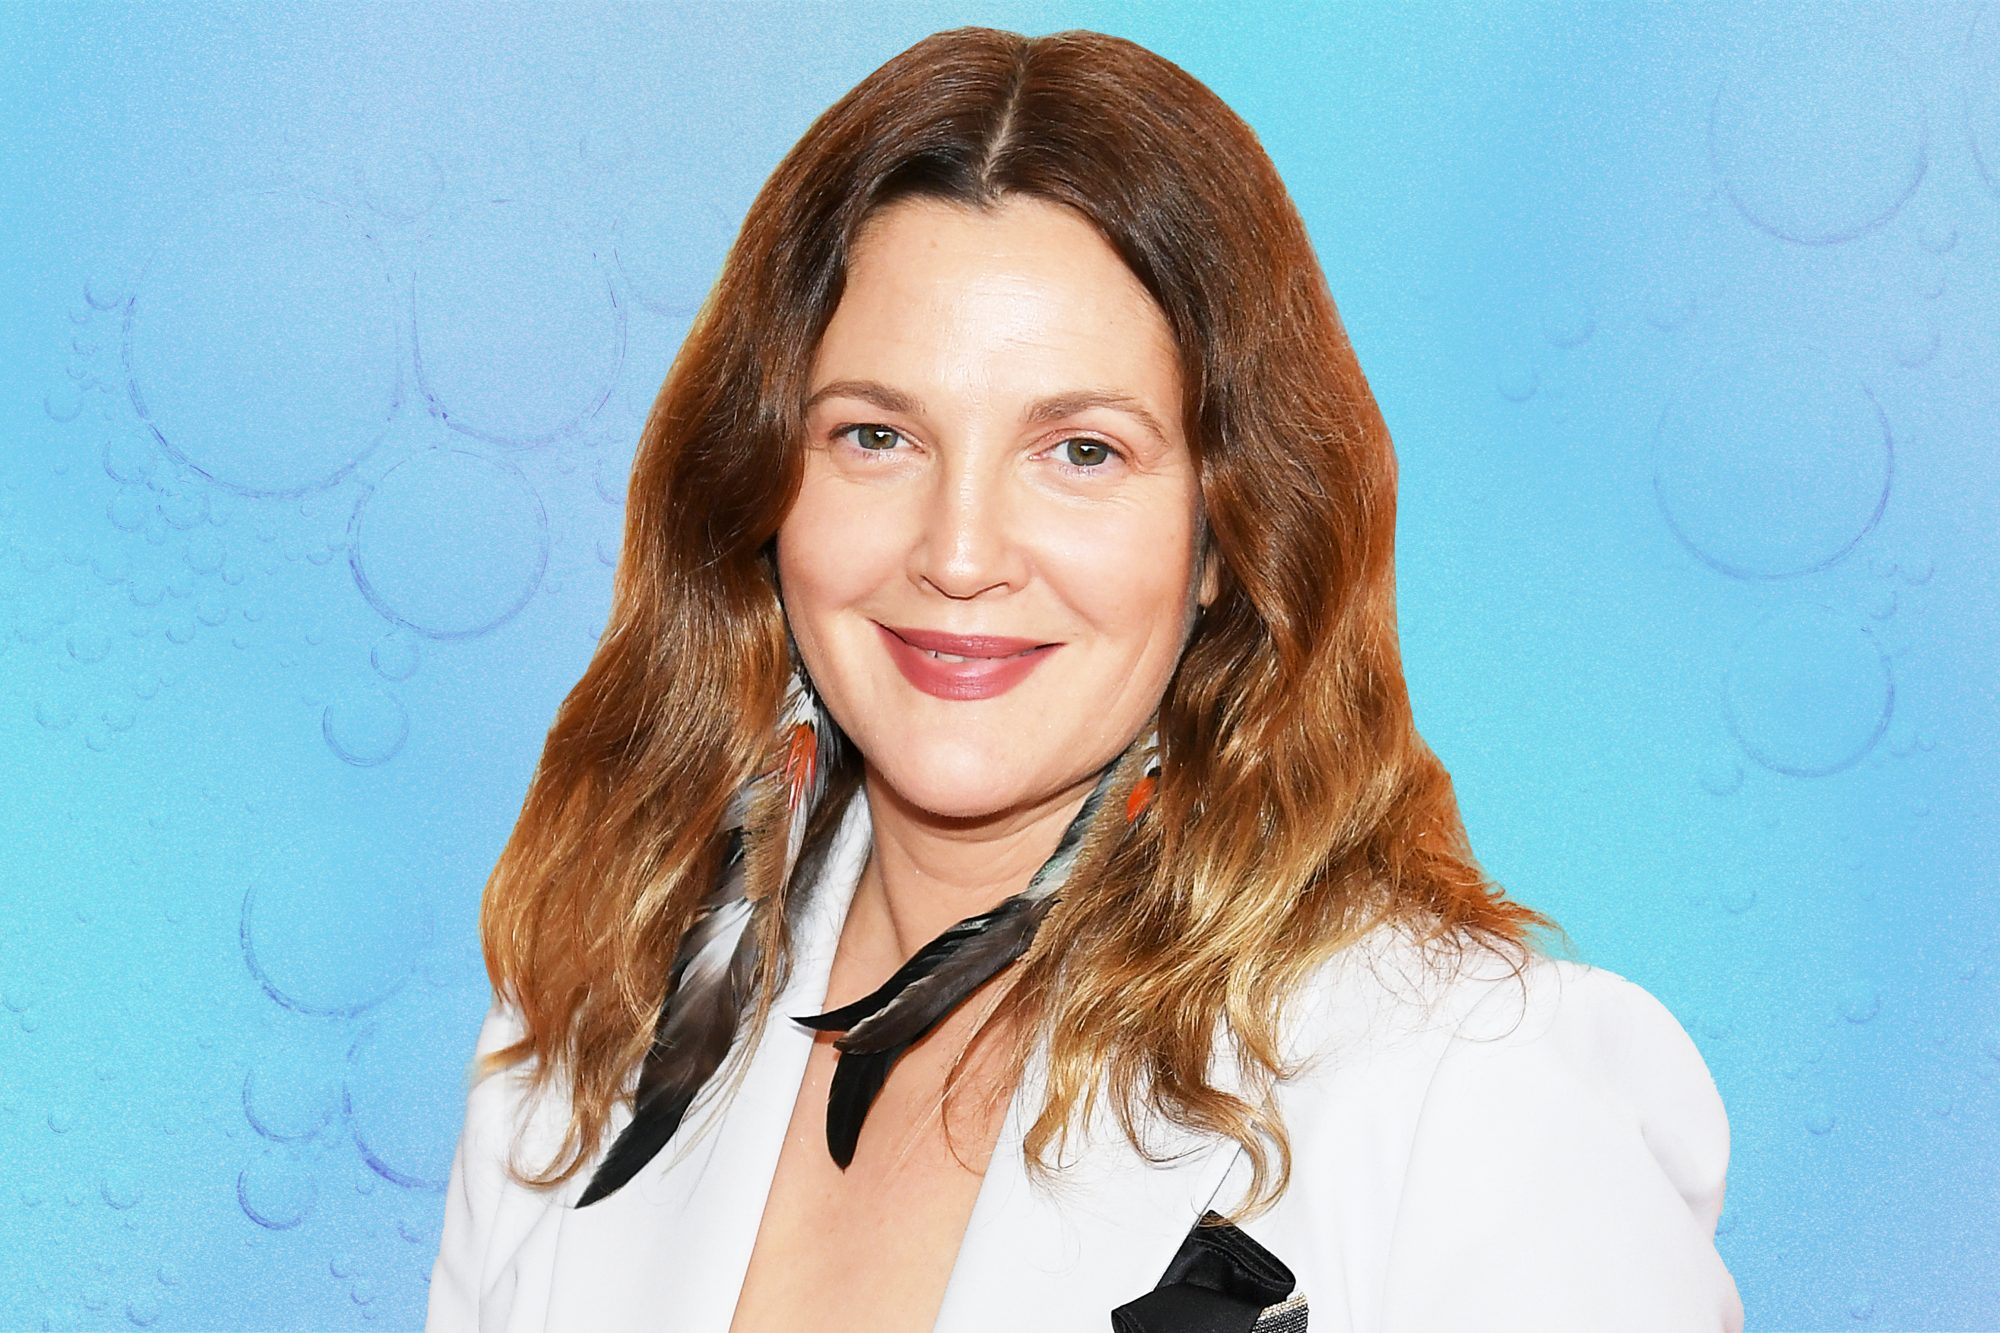 This-$7-Drew-Barrymore-Approved-Shampoo-Bar-Works-So-Well-It's-Already-Sold-Out-Twice-GettyImages-1187250963